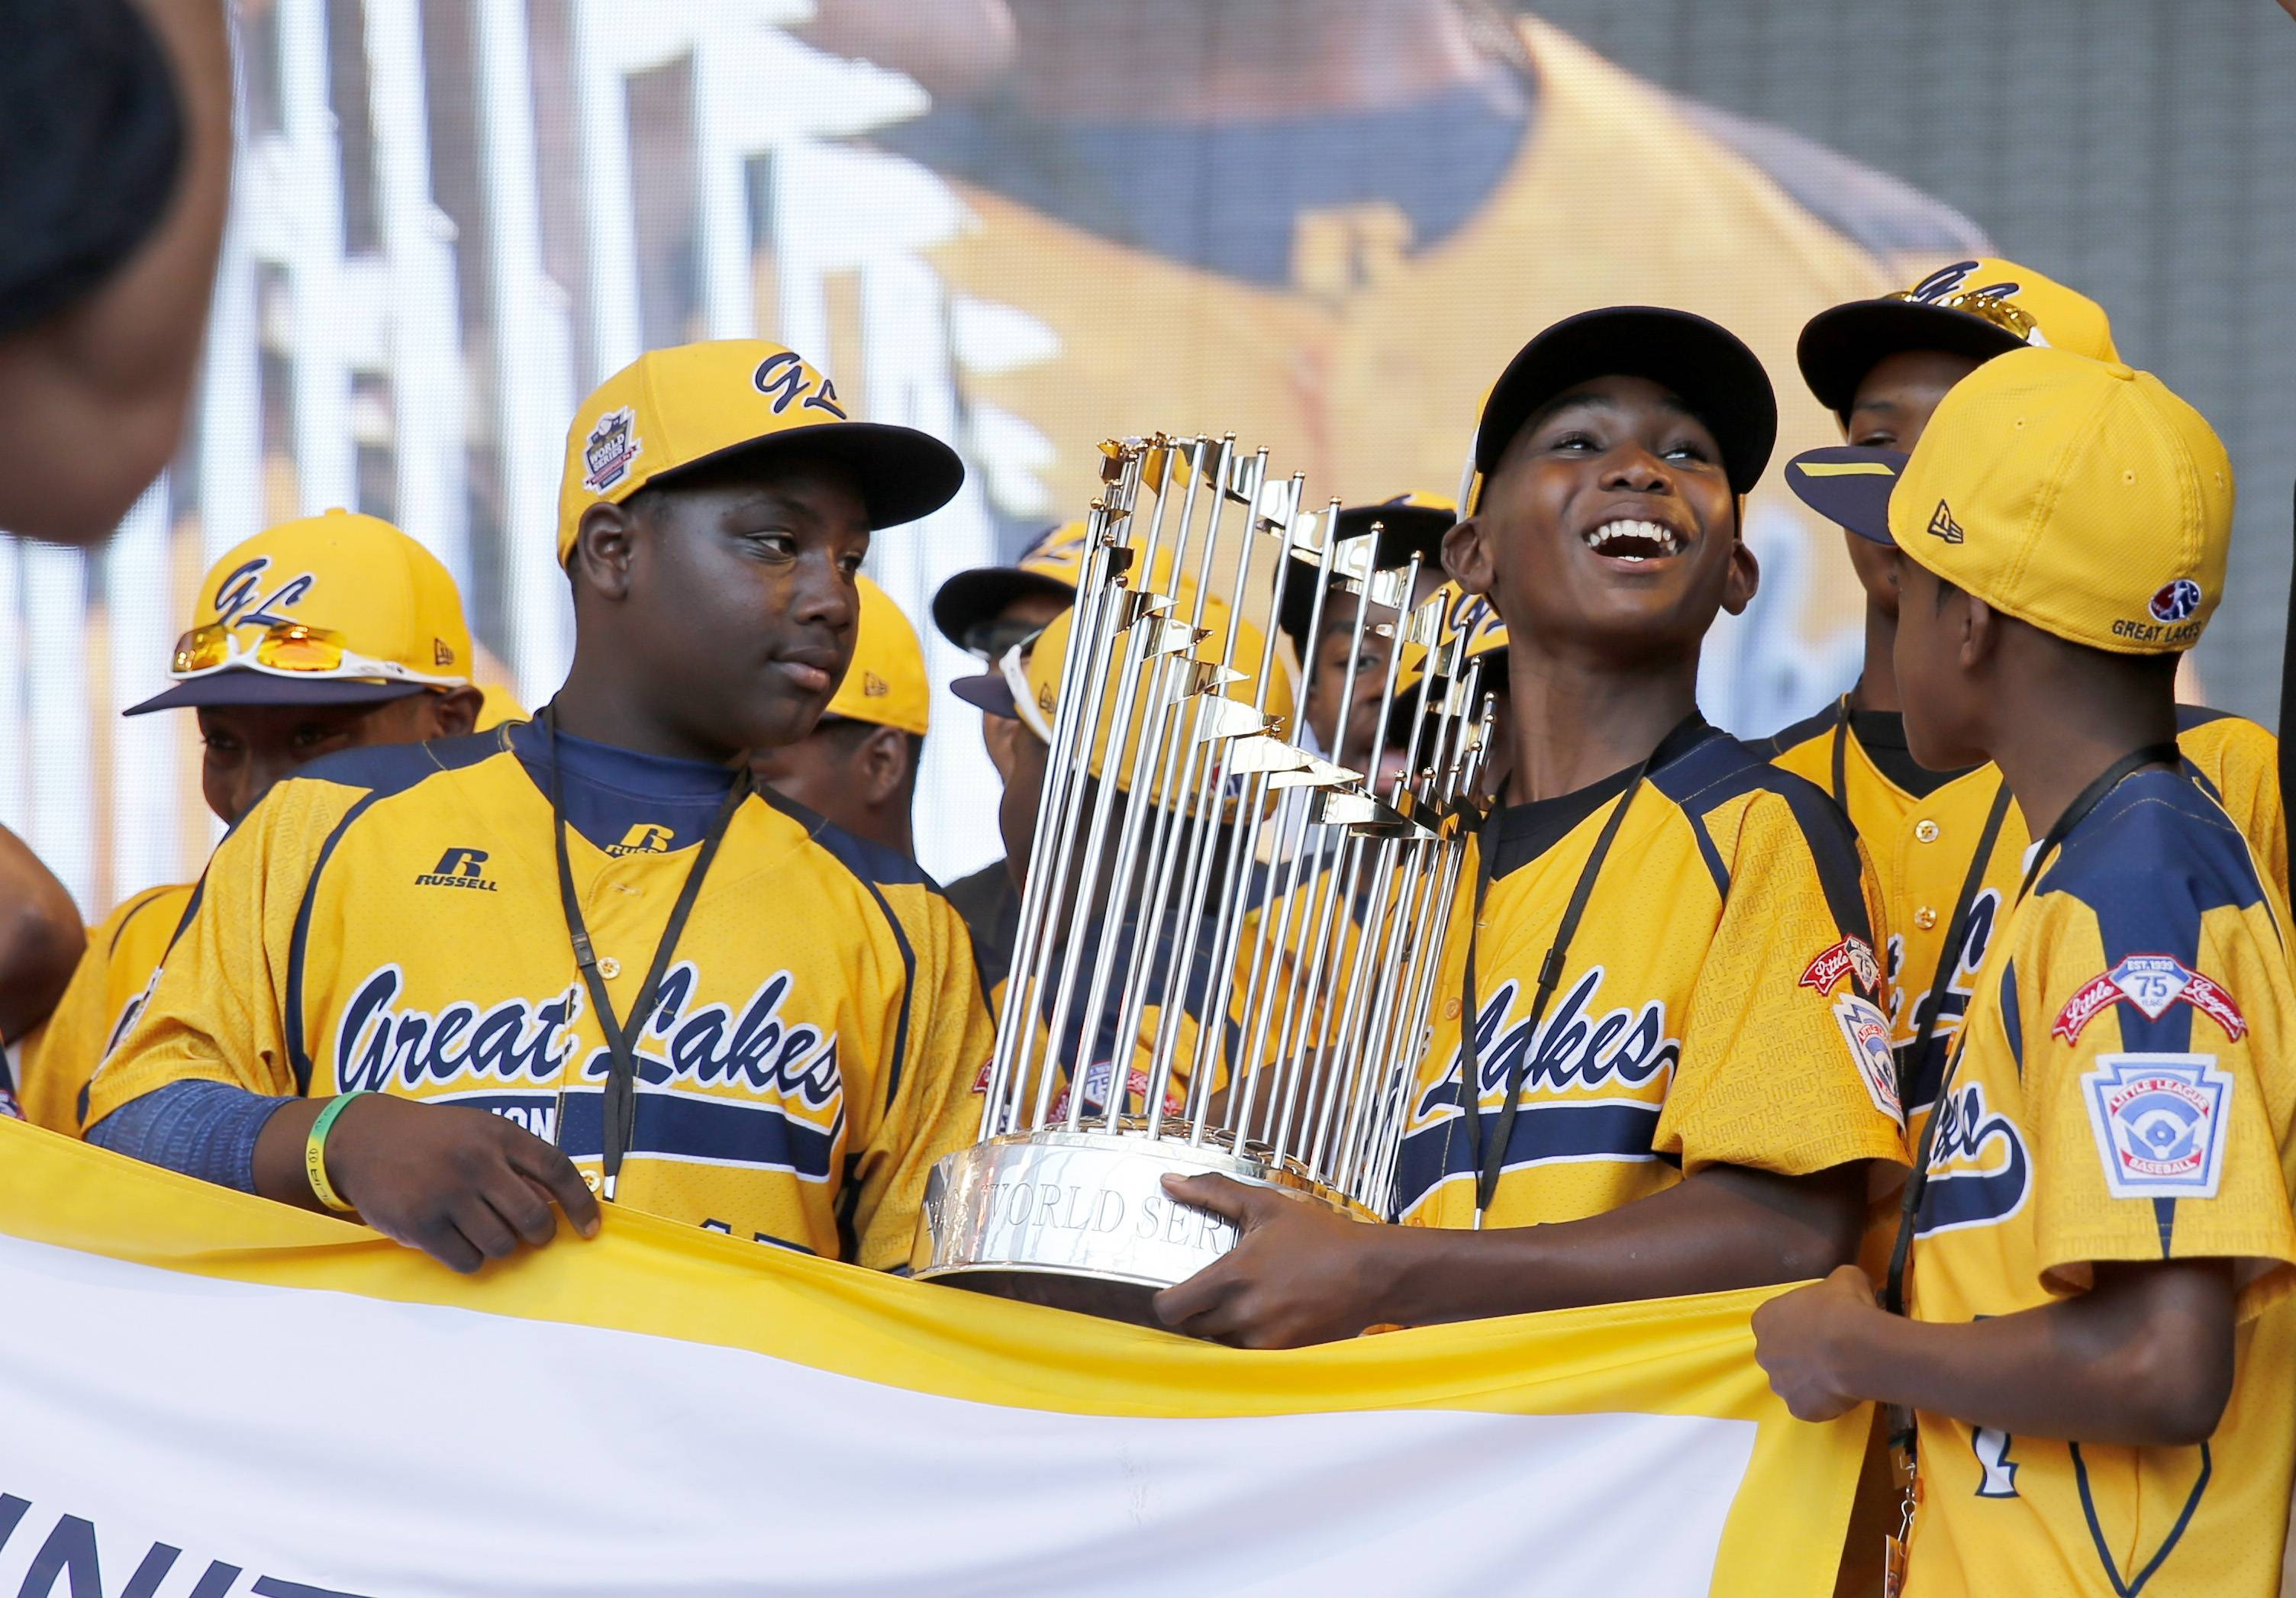 Members of the Jackie Robinson West All Stars Little League baseball team participate in a rally.